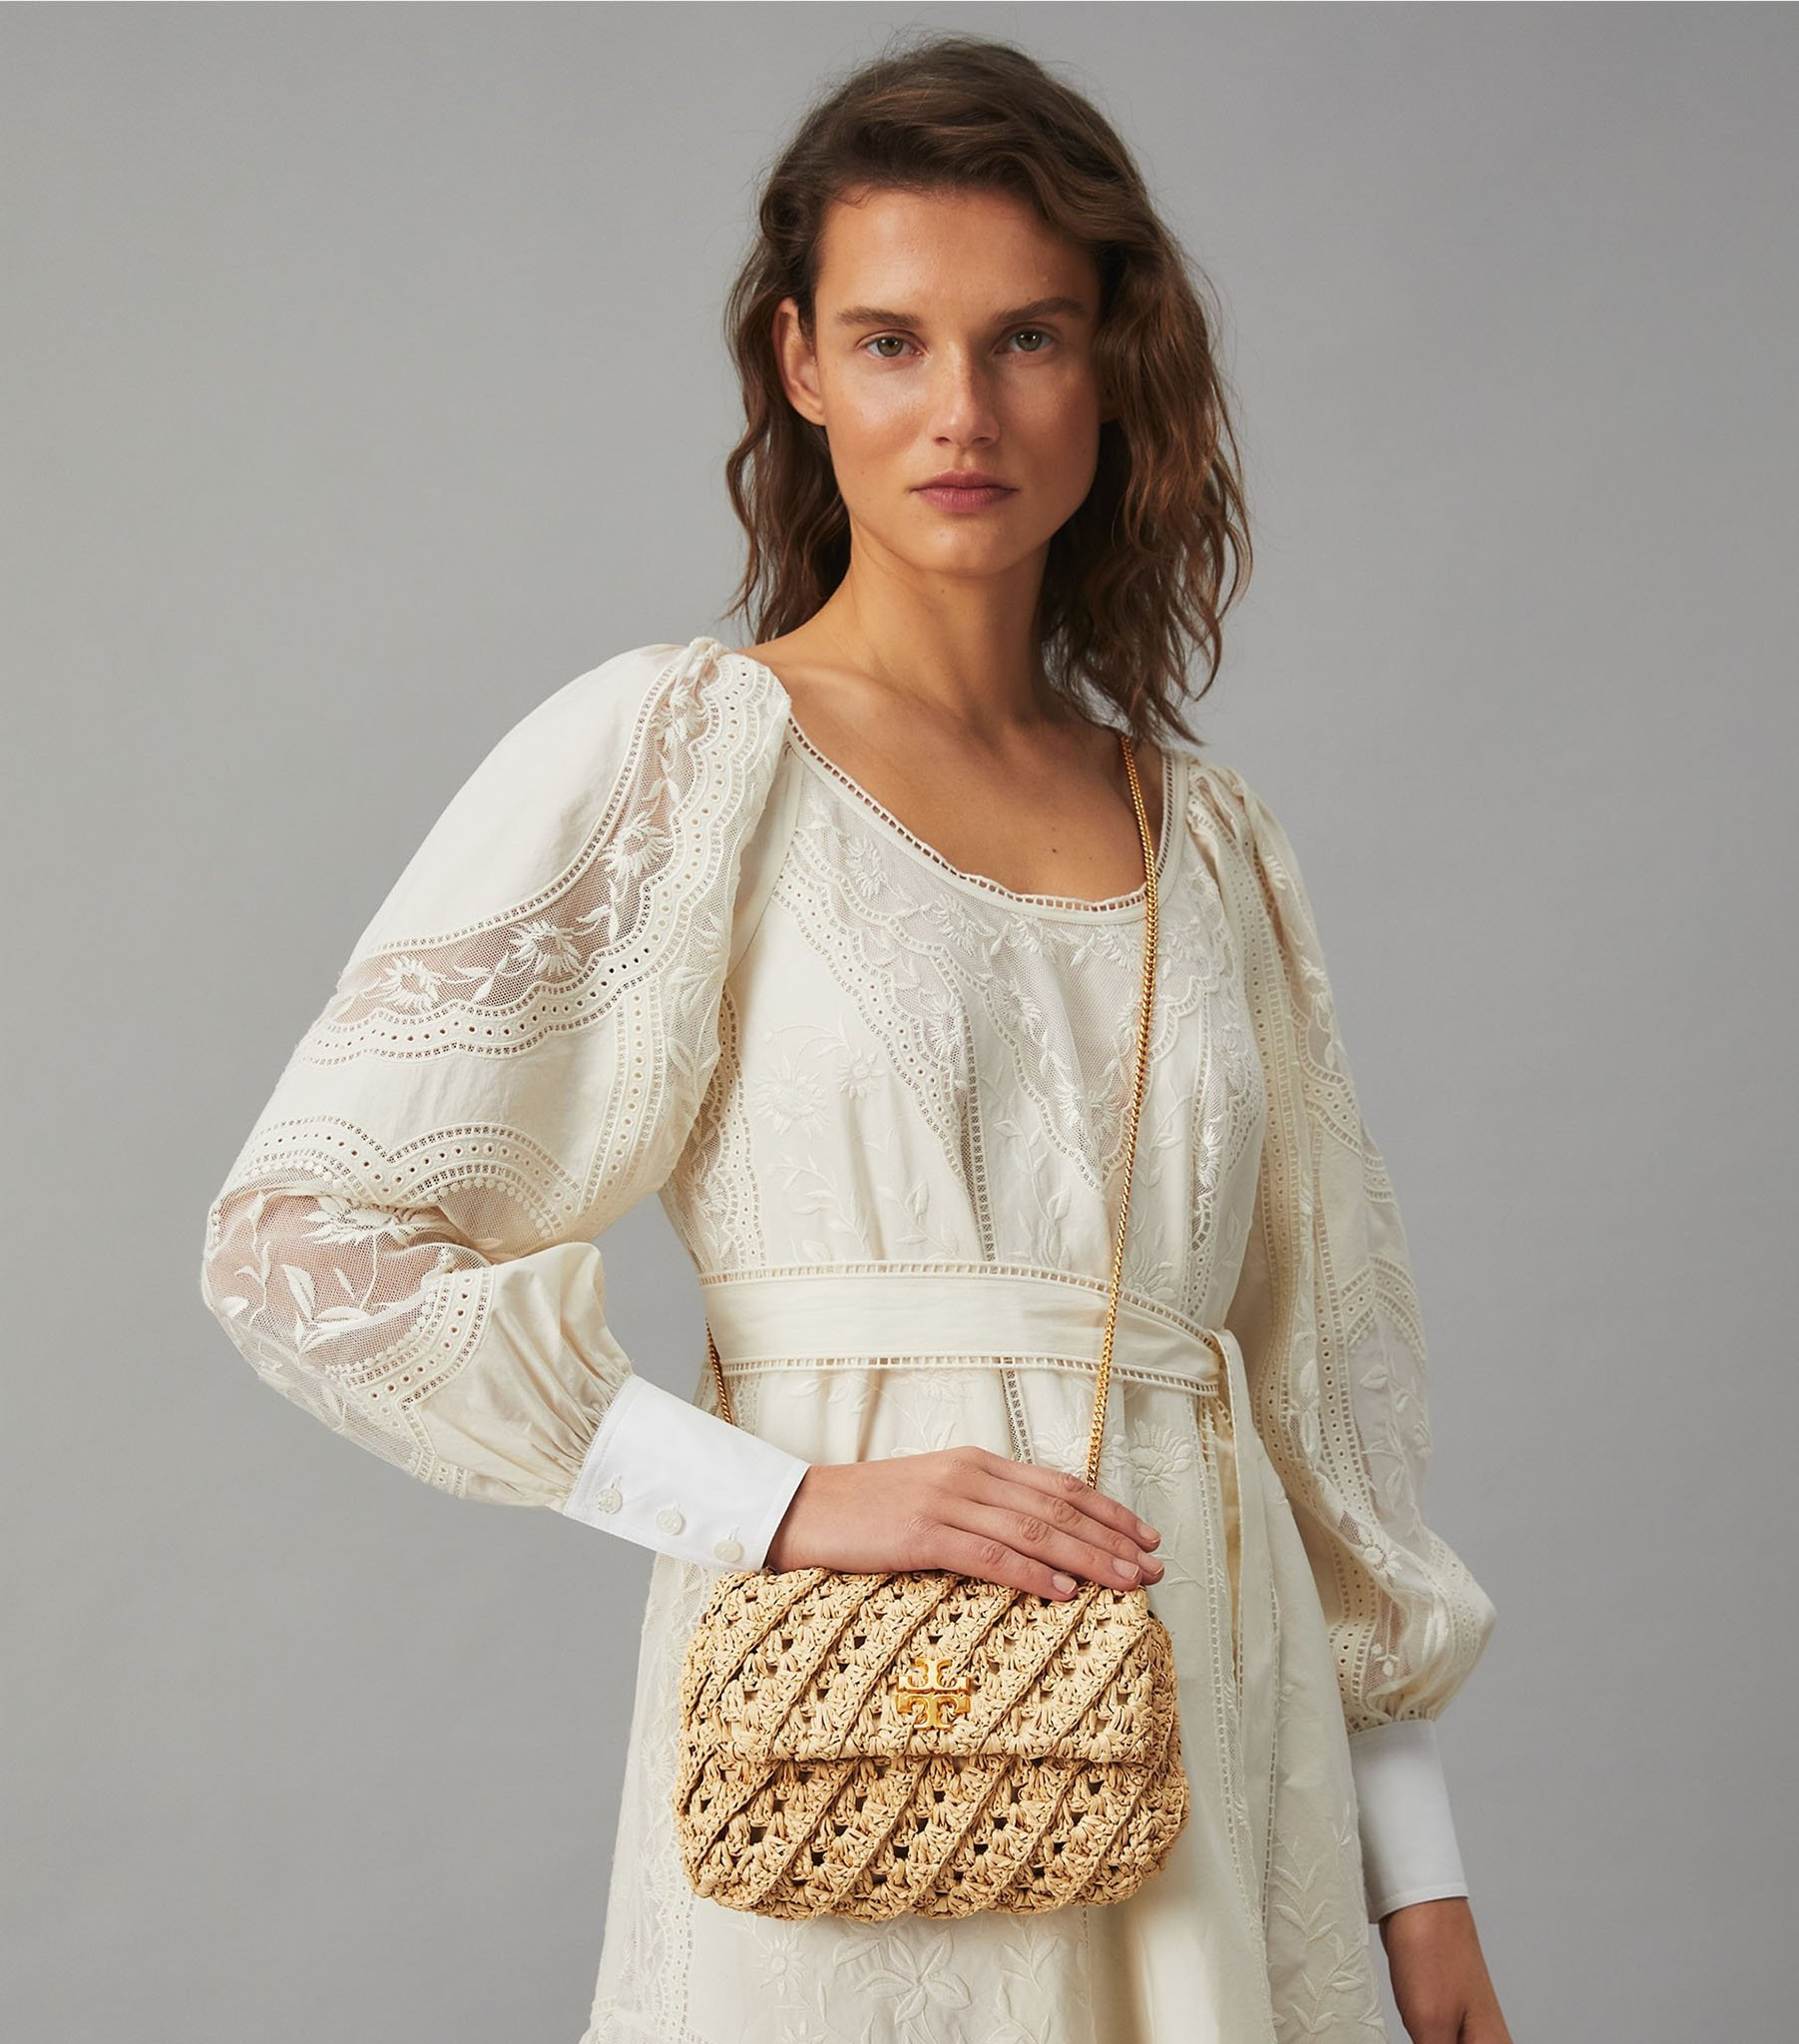 The Kira bag is made from crocheted natural raffia and features the label's double T logo